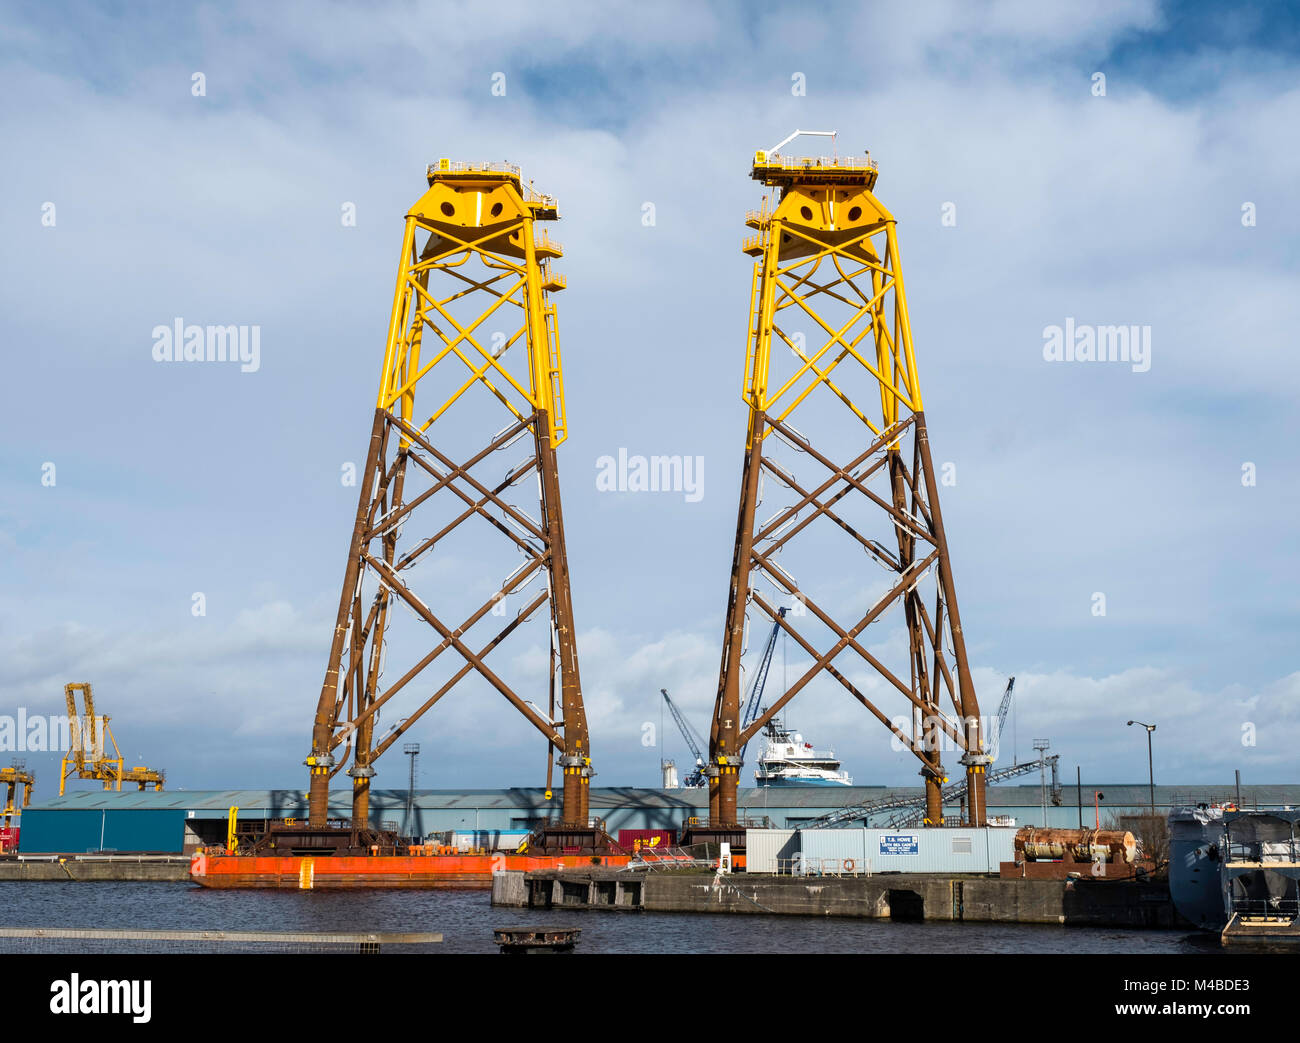 Large sub-sea platforms await delivery to Beatrice offshore wind farm in the North Sea.  They were fabricated by - Stock Image